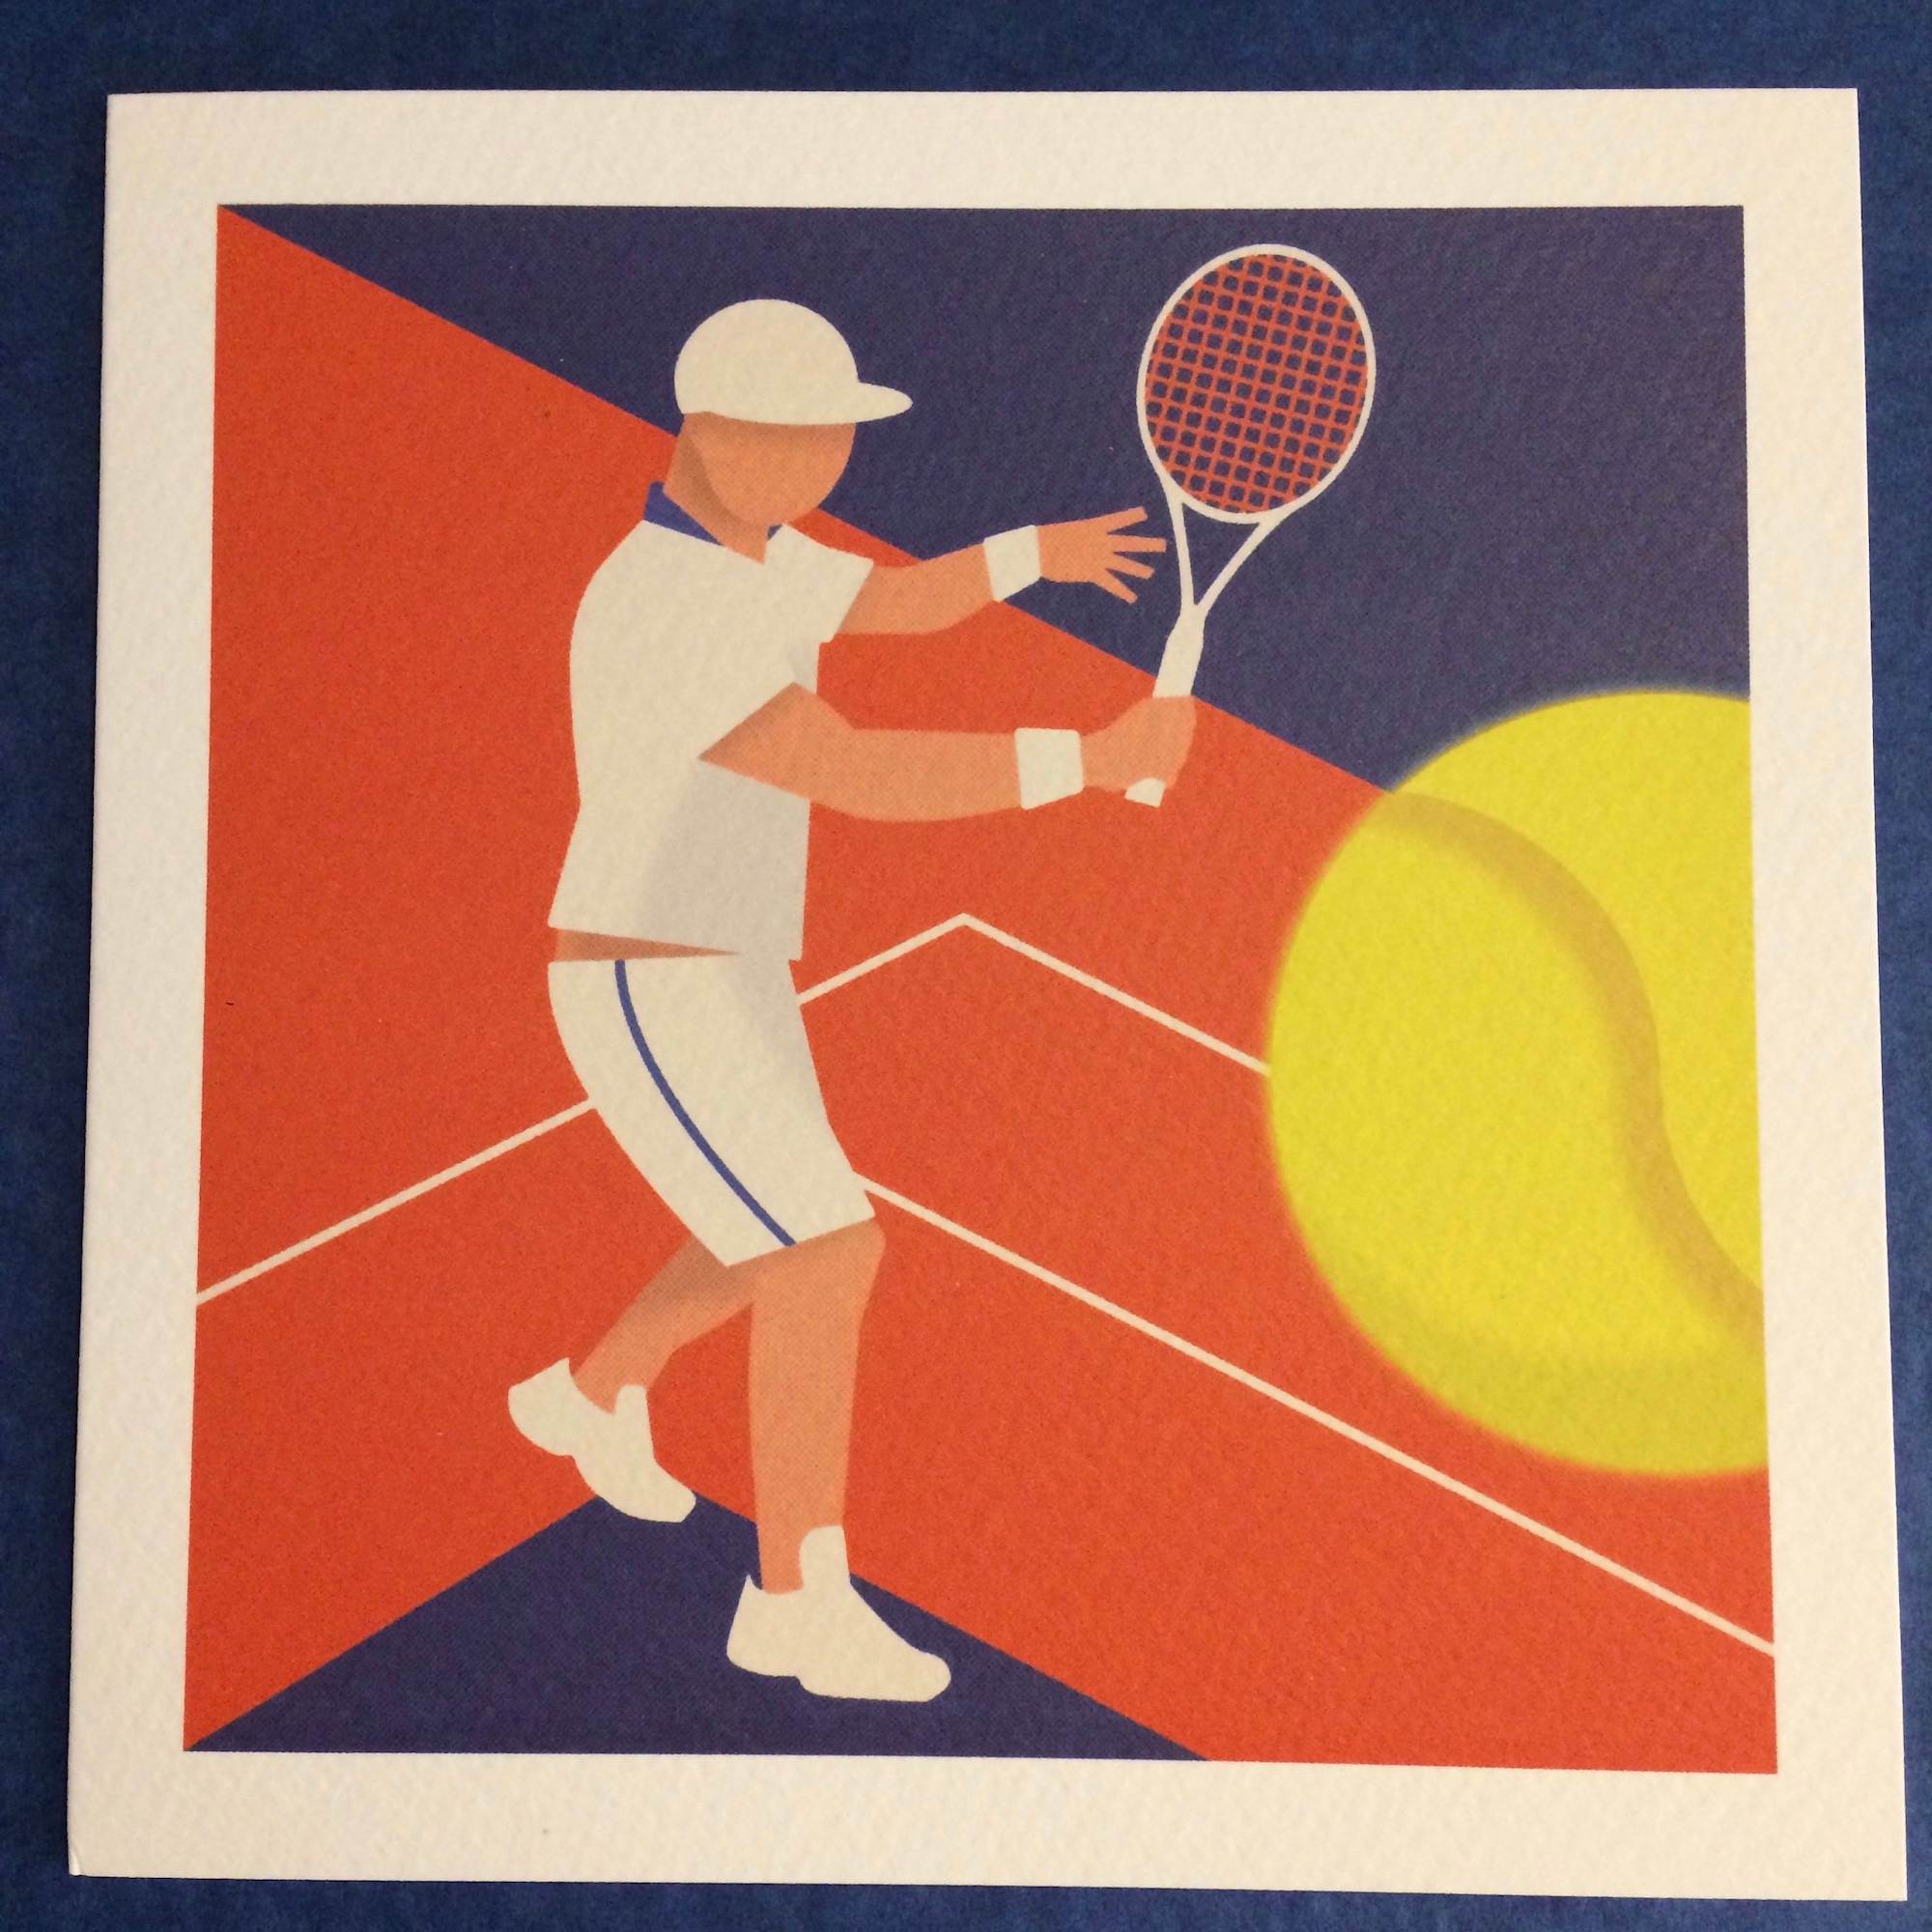 'New Balls' Tennis Greetings Card by Humbee